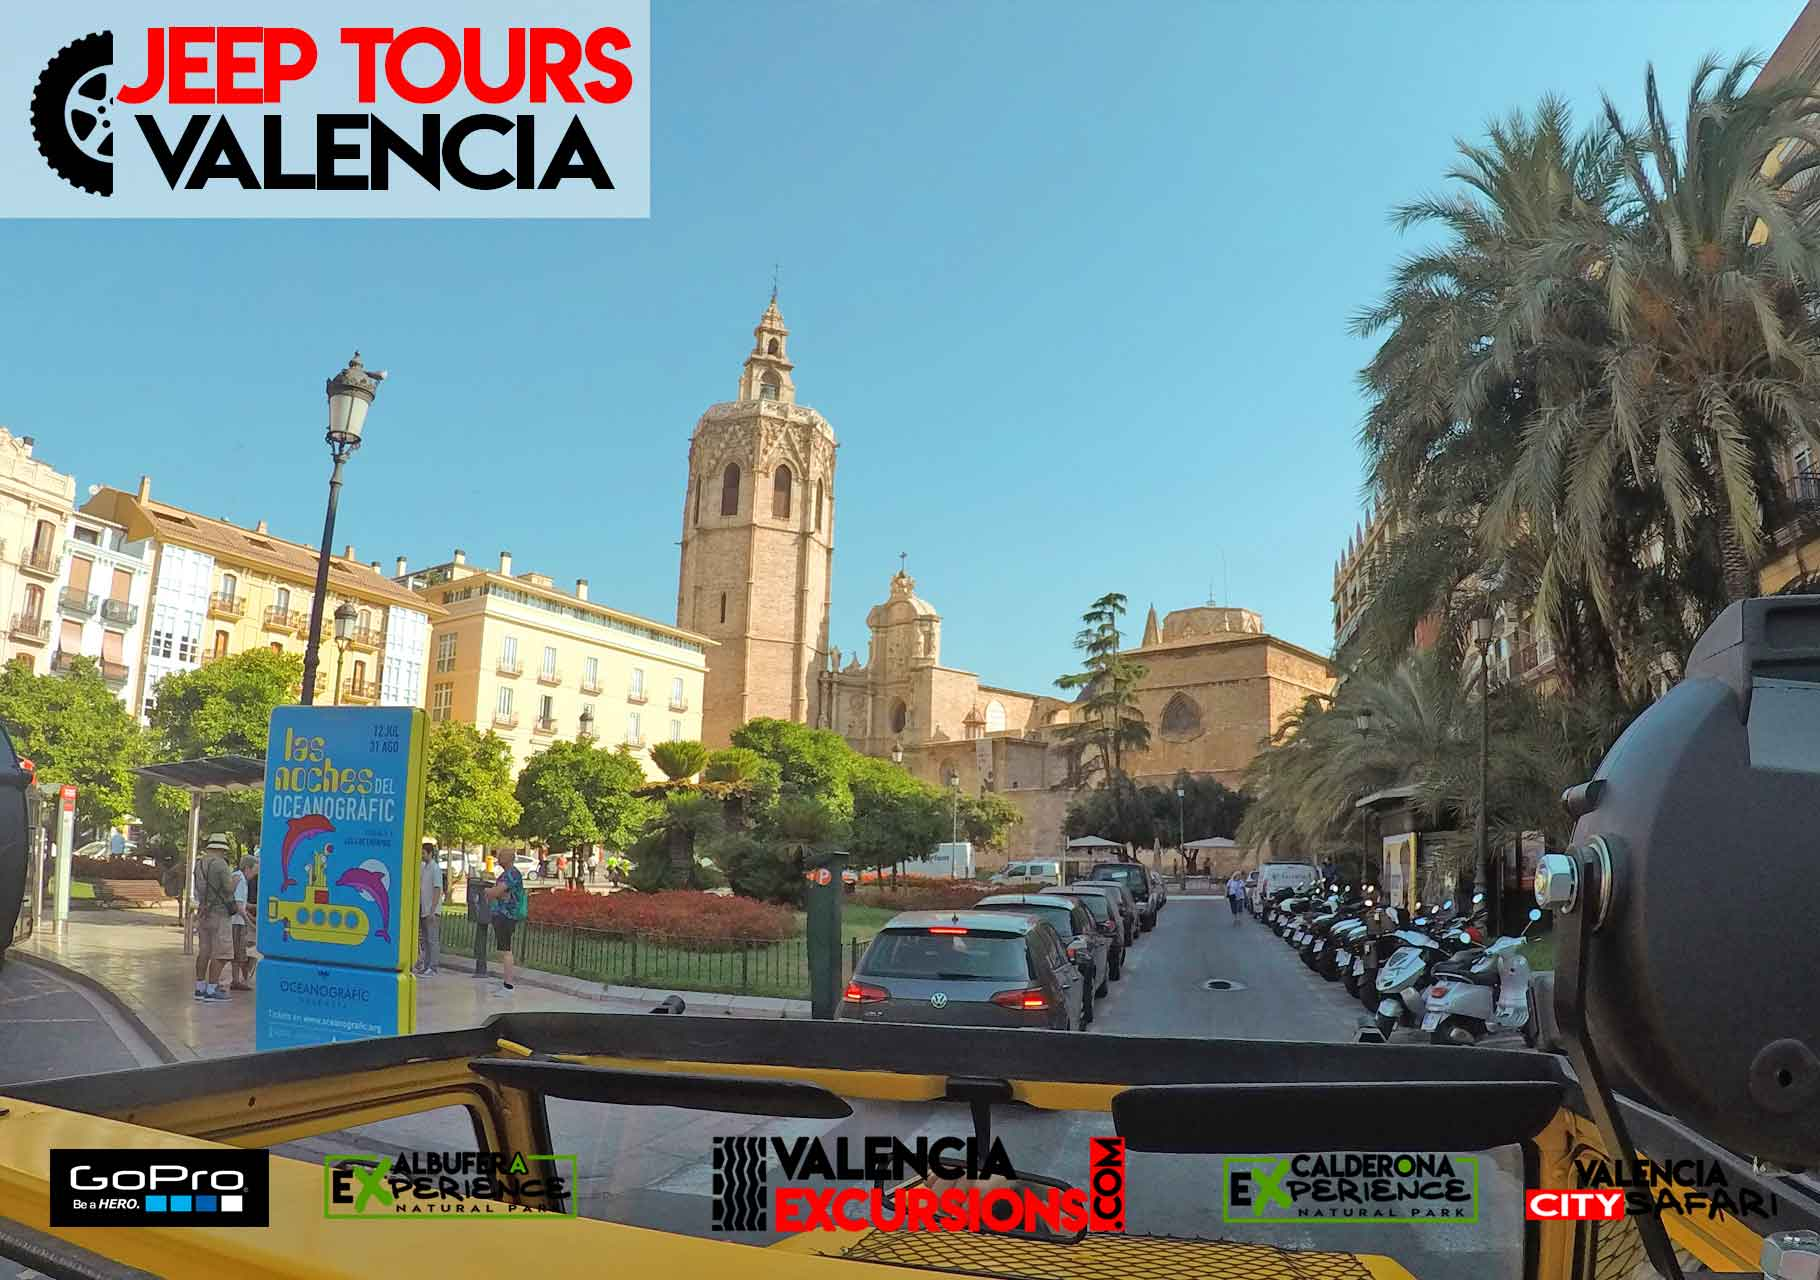 Tour in Valencia CIty